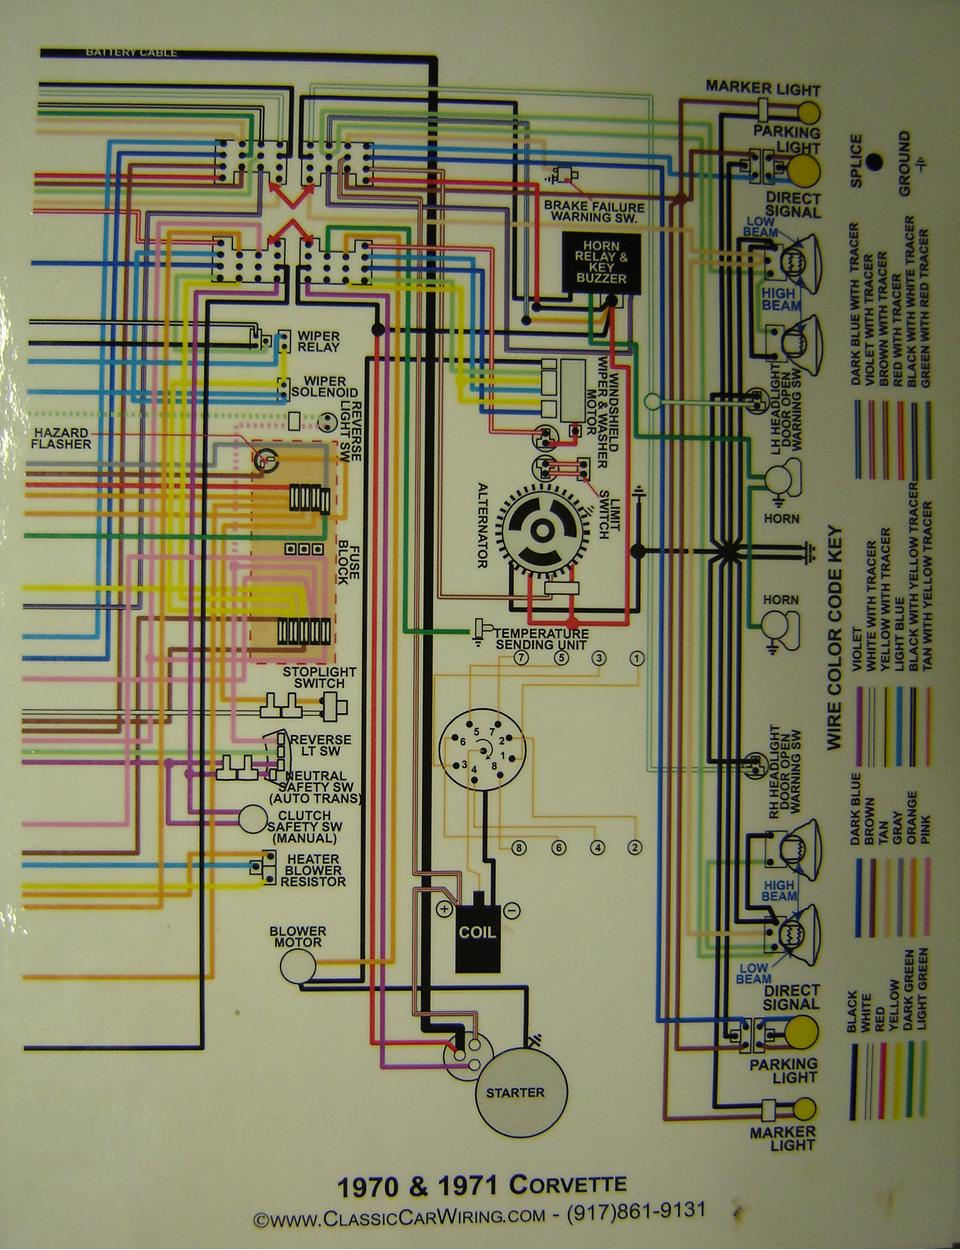 1970 71 corvette color wiring diagram B chevy diagrams c3 corvette wiring diagram at crackthecode.co